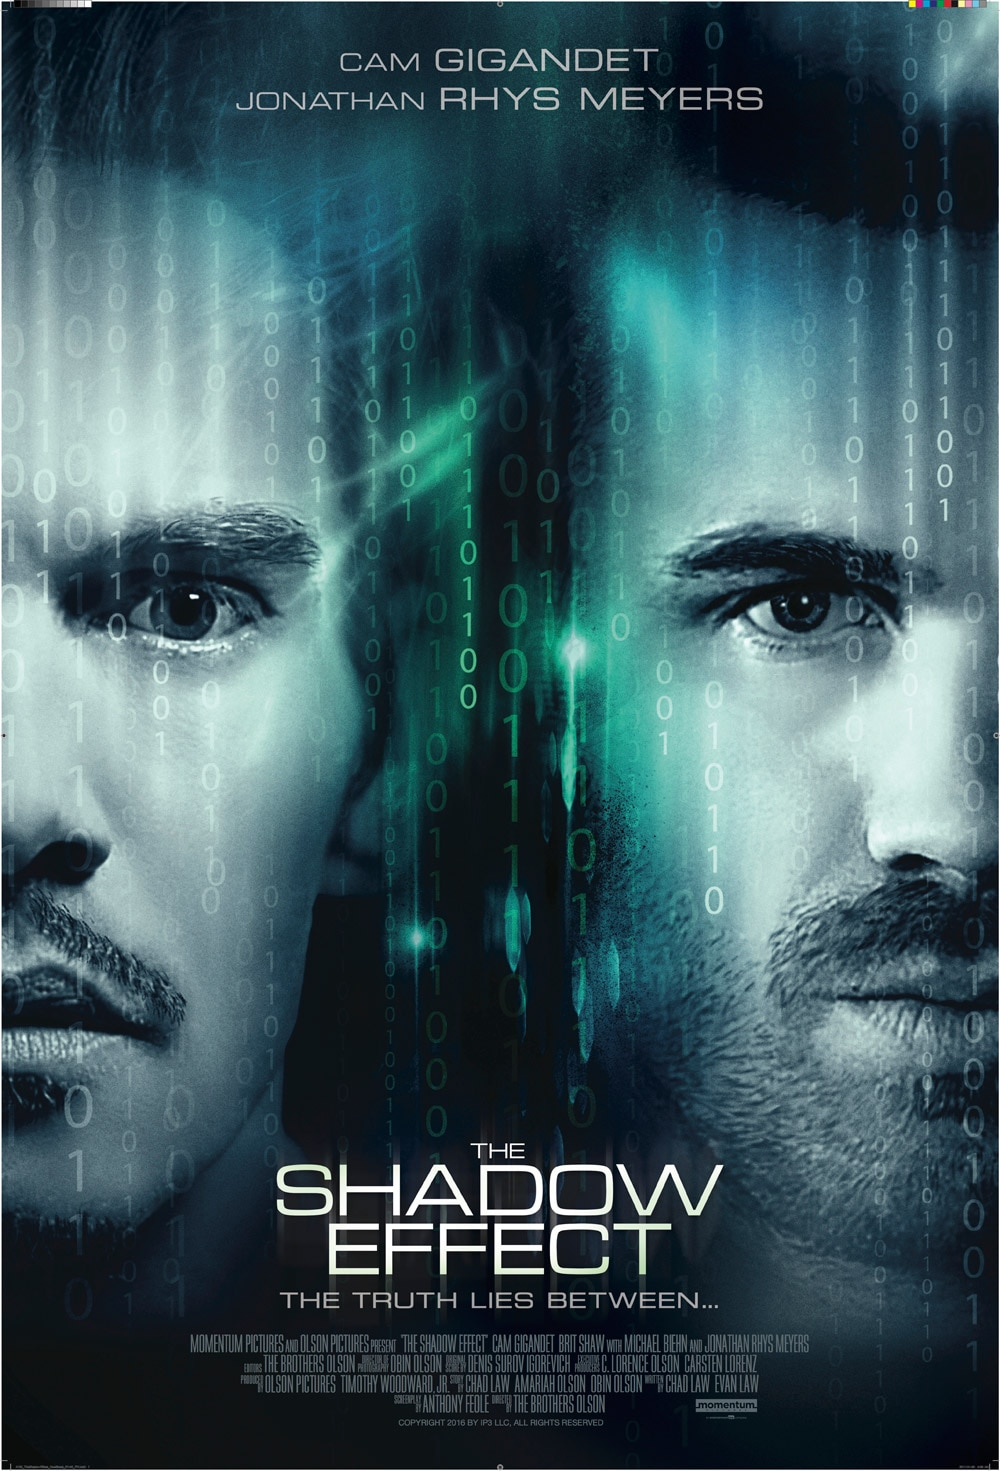 TheShadowEffect OneSheet - DVD and Blu-ray Releases: May 2, 2017